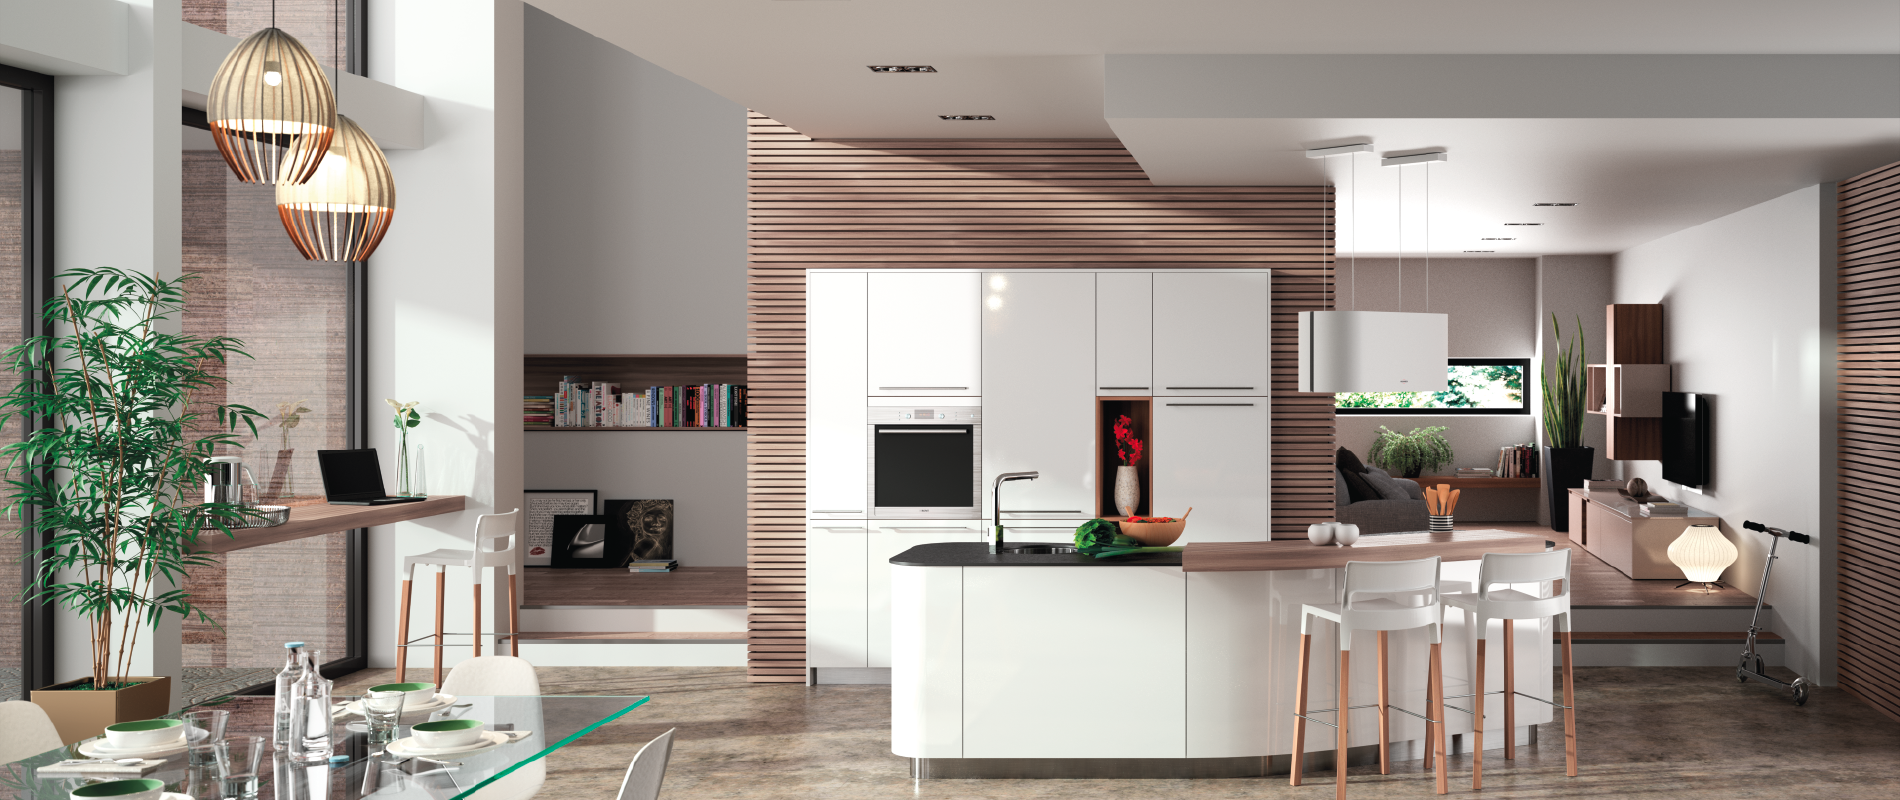 Cuisine design arrondie alicante 1 fabricant cuisiniste for Cuisine equipee catalogue